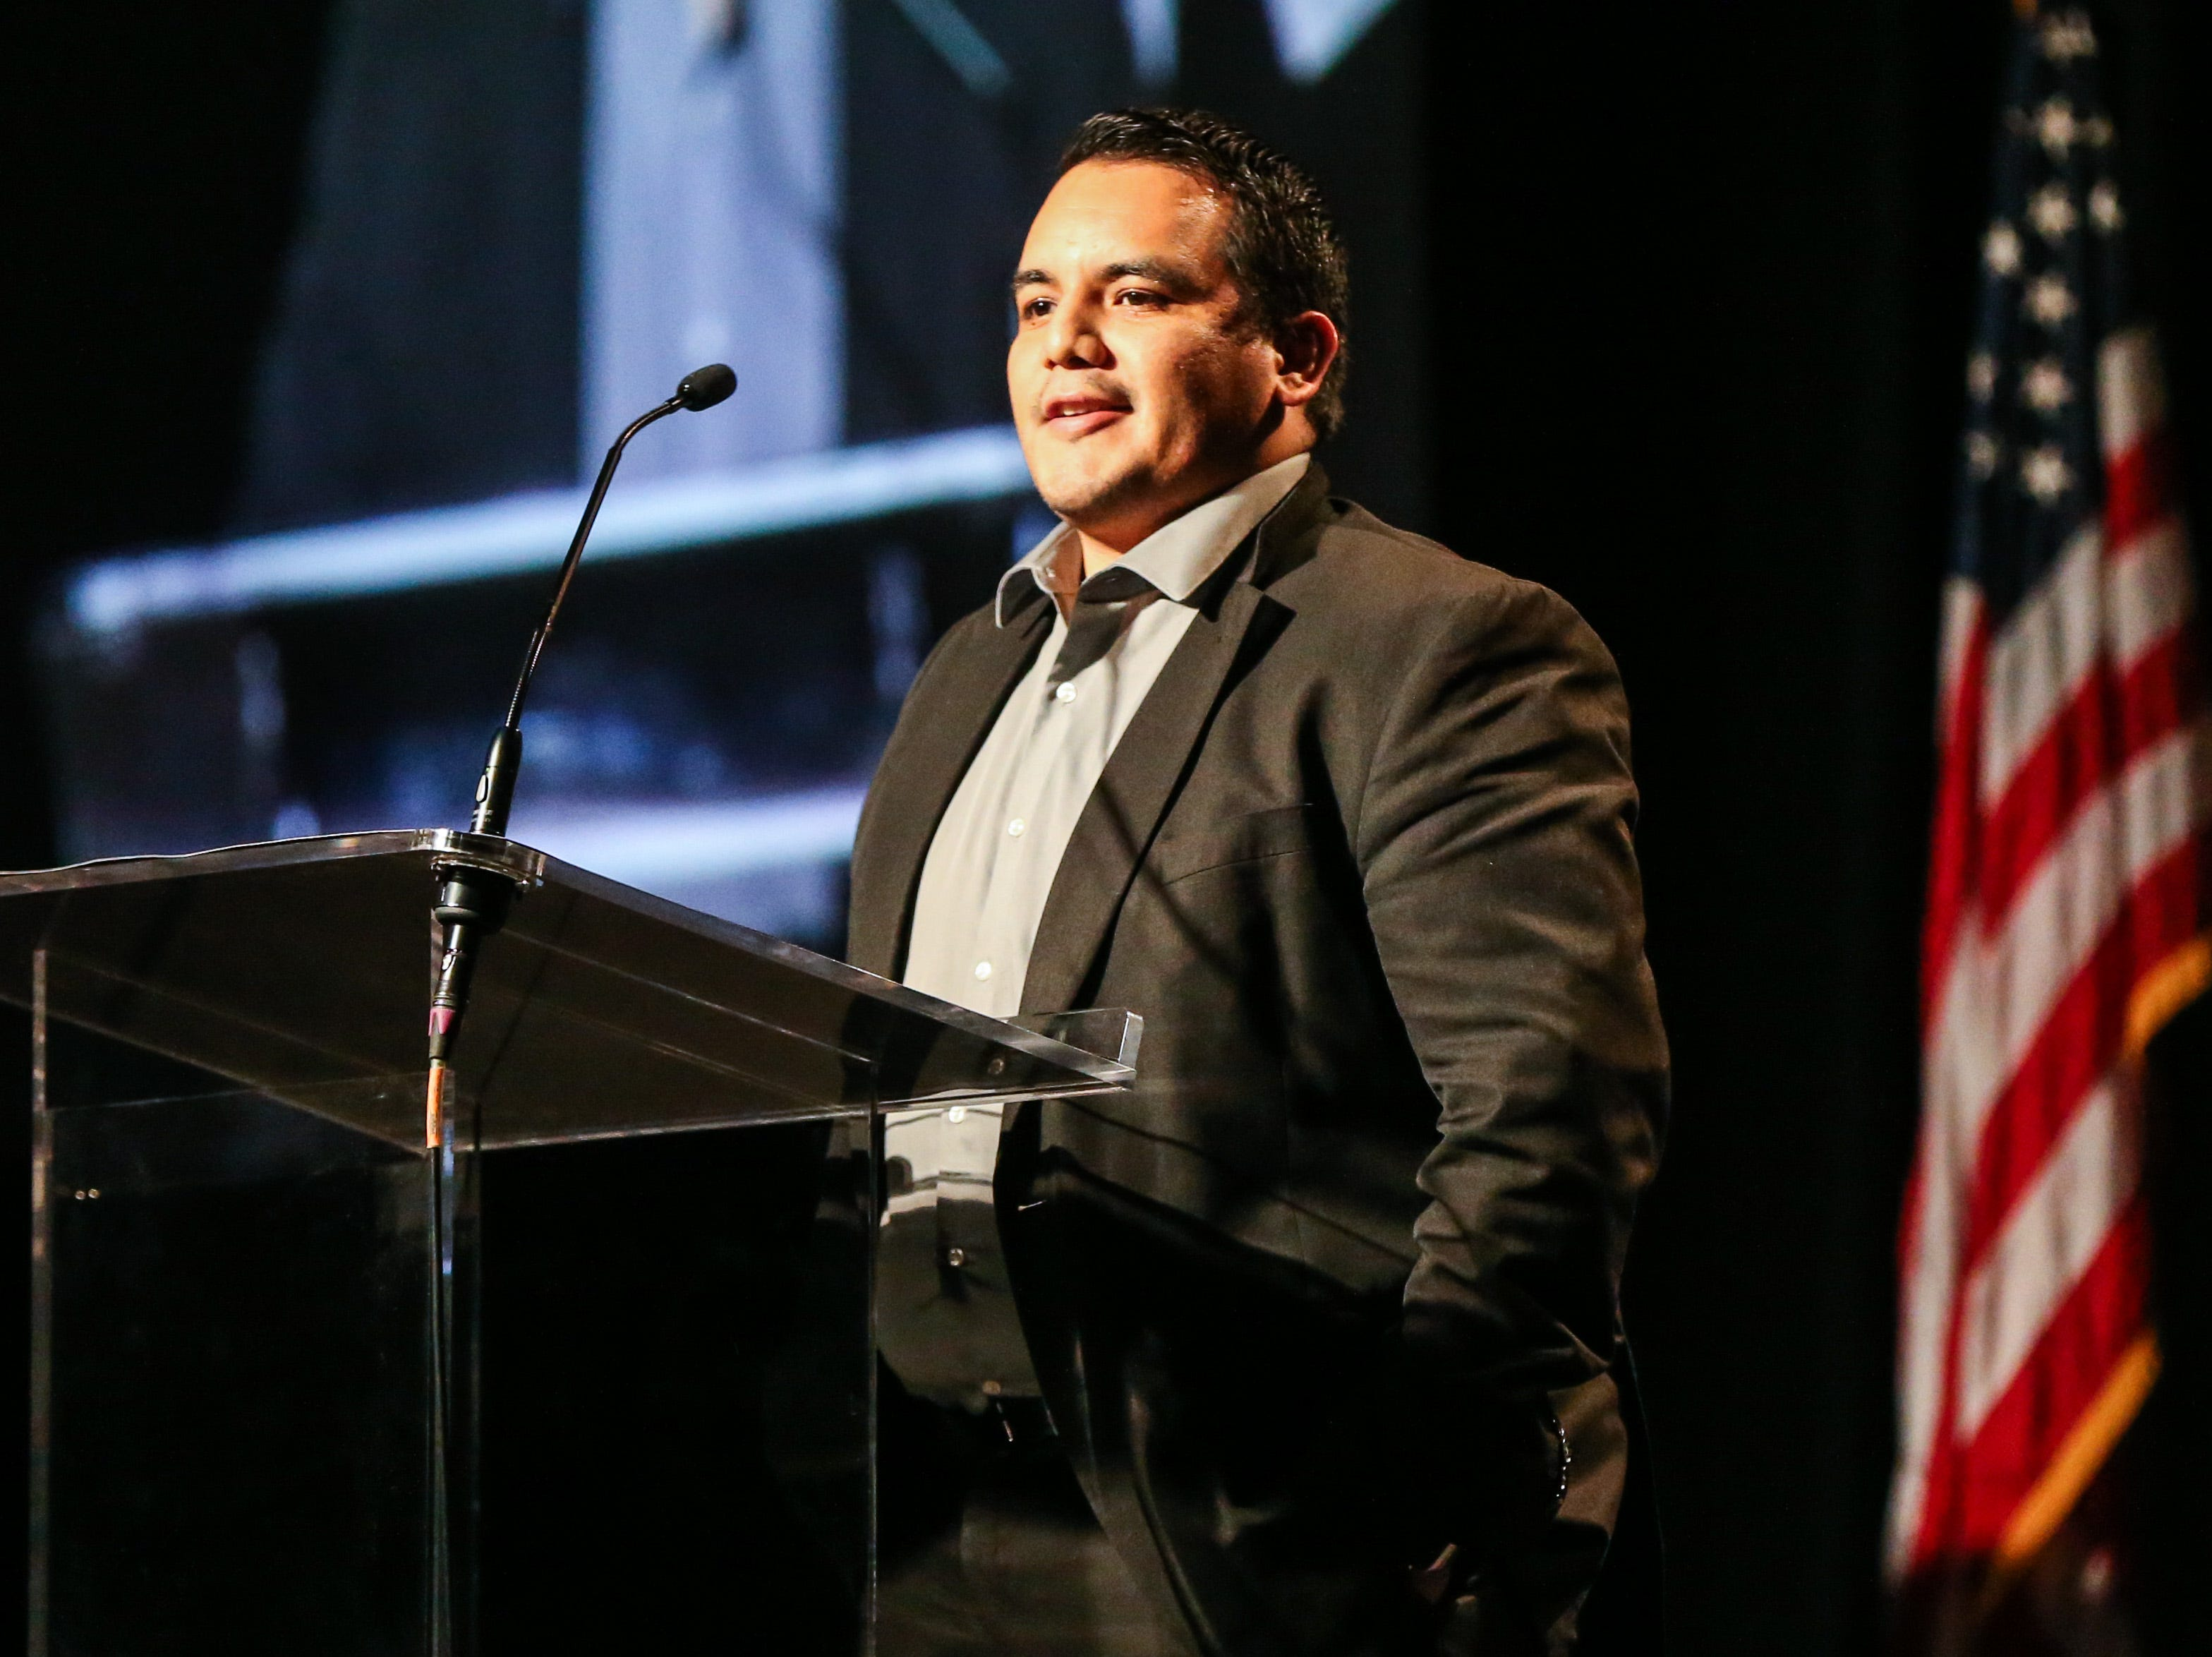 Rosendo Ramos talks as he accepts the Special Recognition Award for the Lake  Lake View Mariachi Band during the San Angelo Chamber of Commerce Annual Banquet Thursday, Jan. 24, 2019, at McNease Convention Center.